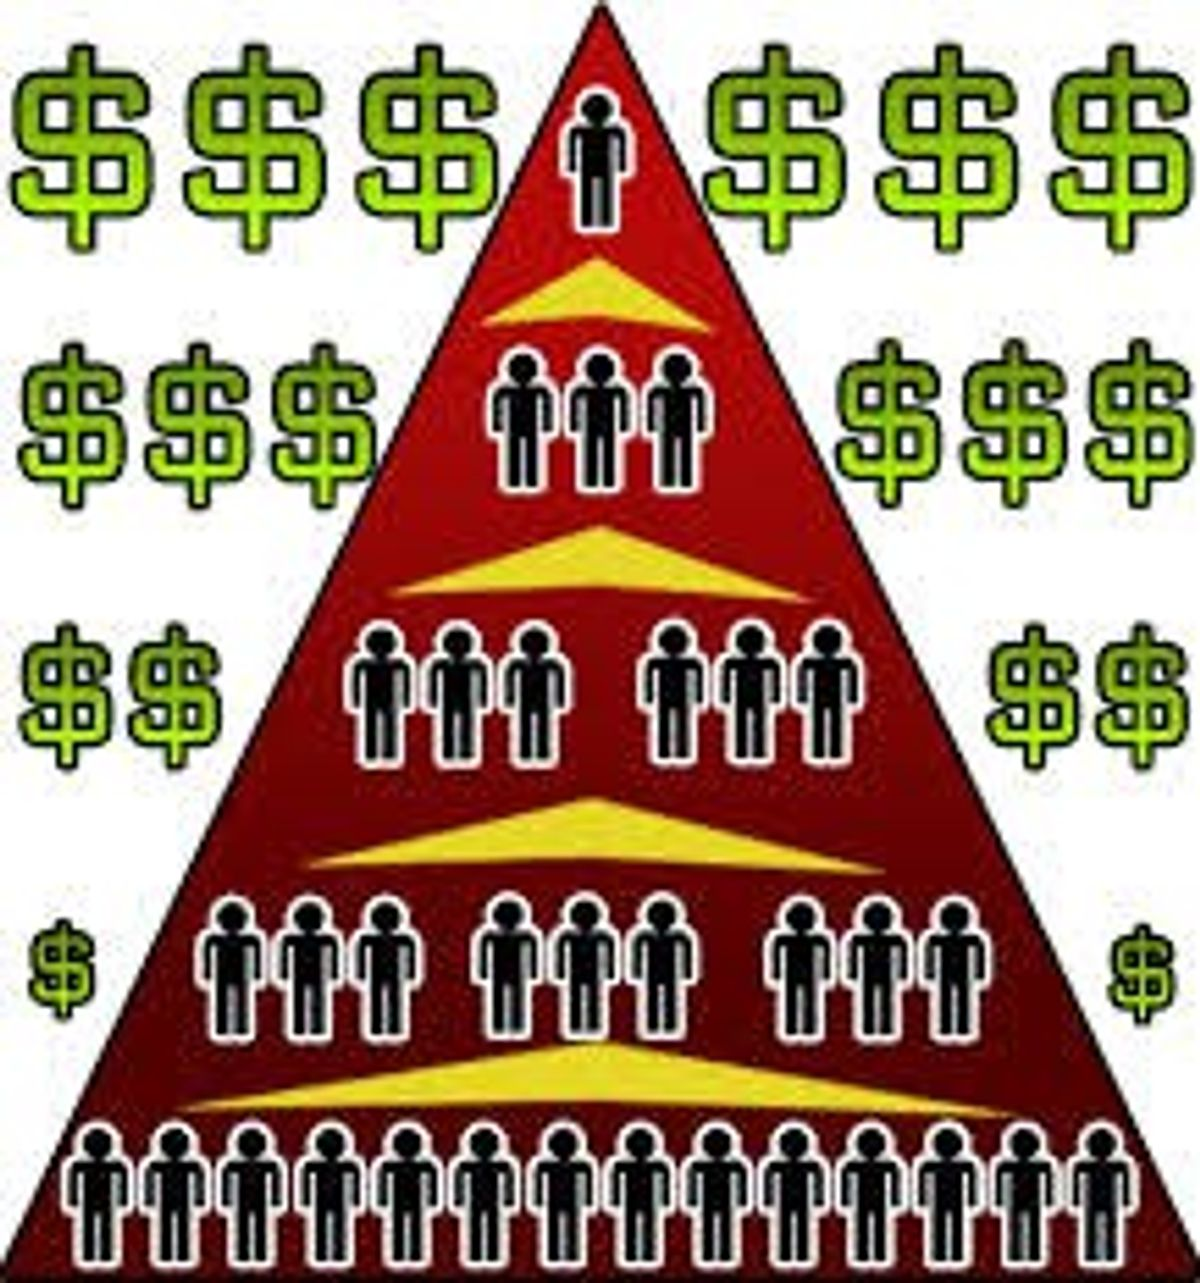 Seven Ways To Spot A Pyramid Scheme Or MLM Scam